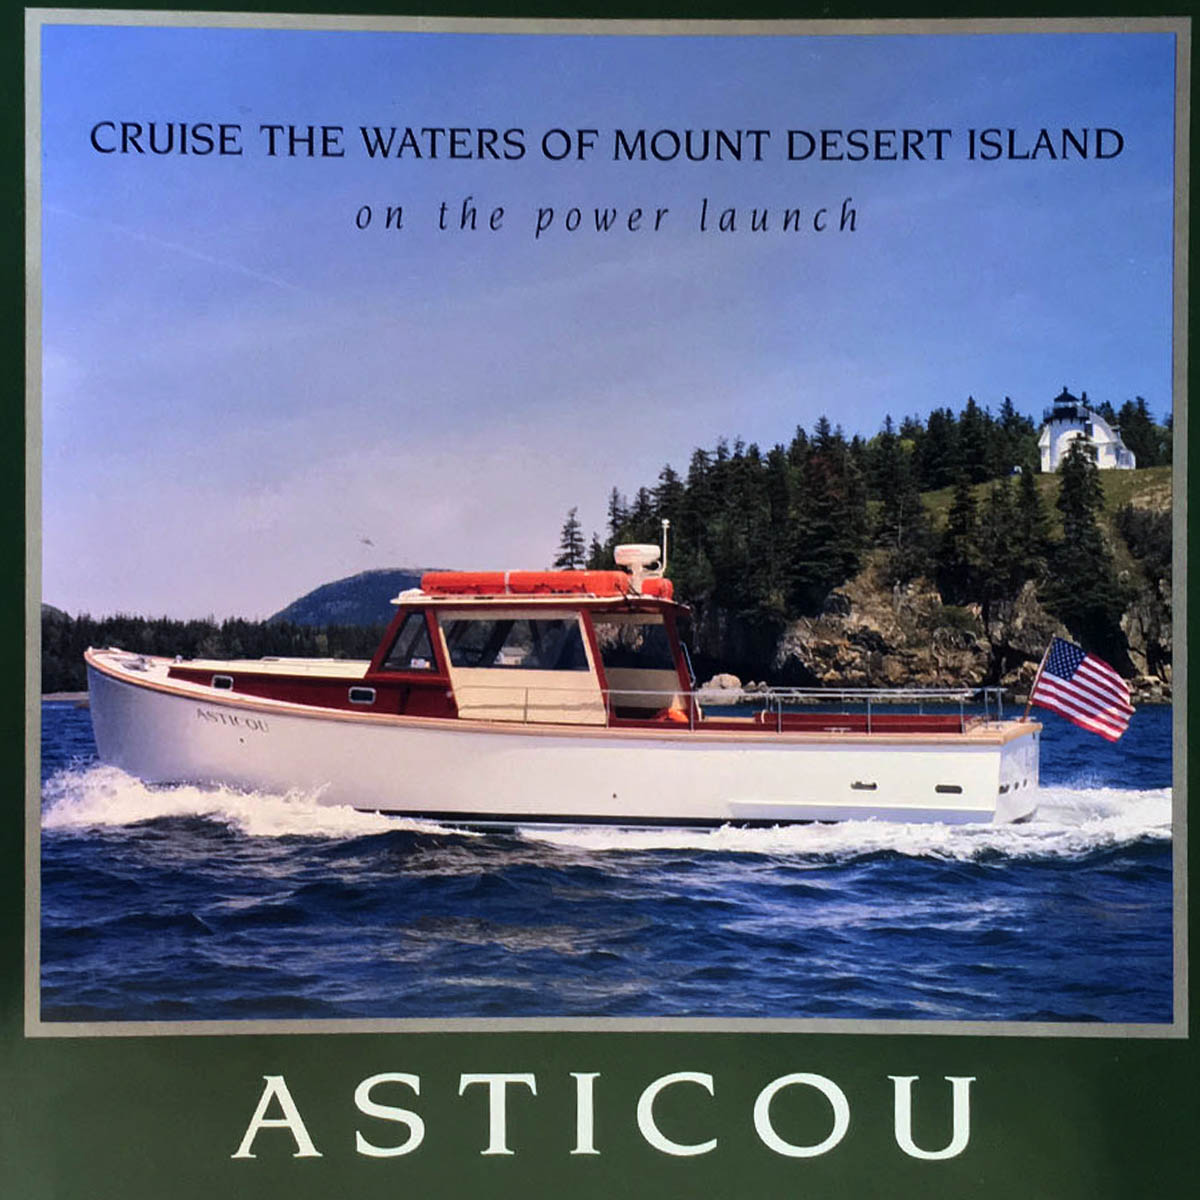 Evening Cruise on Asticou - Captain Rick Savage is generously providing this evening outing for up to 25 aboard Asticou. Cruise the waters around NEH with your group on this unforgettable evening adventure! Available to redeem on any mutually agreeable date in July or August 2019. Bring some appetizers and beverages to turn it into a scenic cocktail party!Retail Value: $800.00